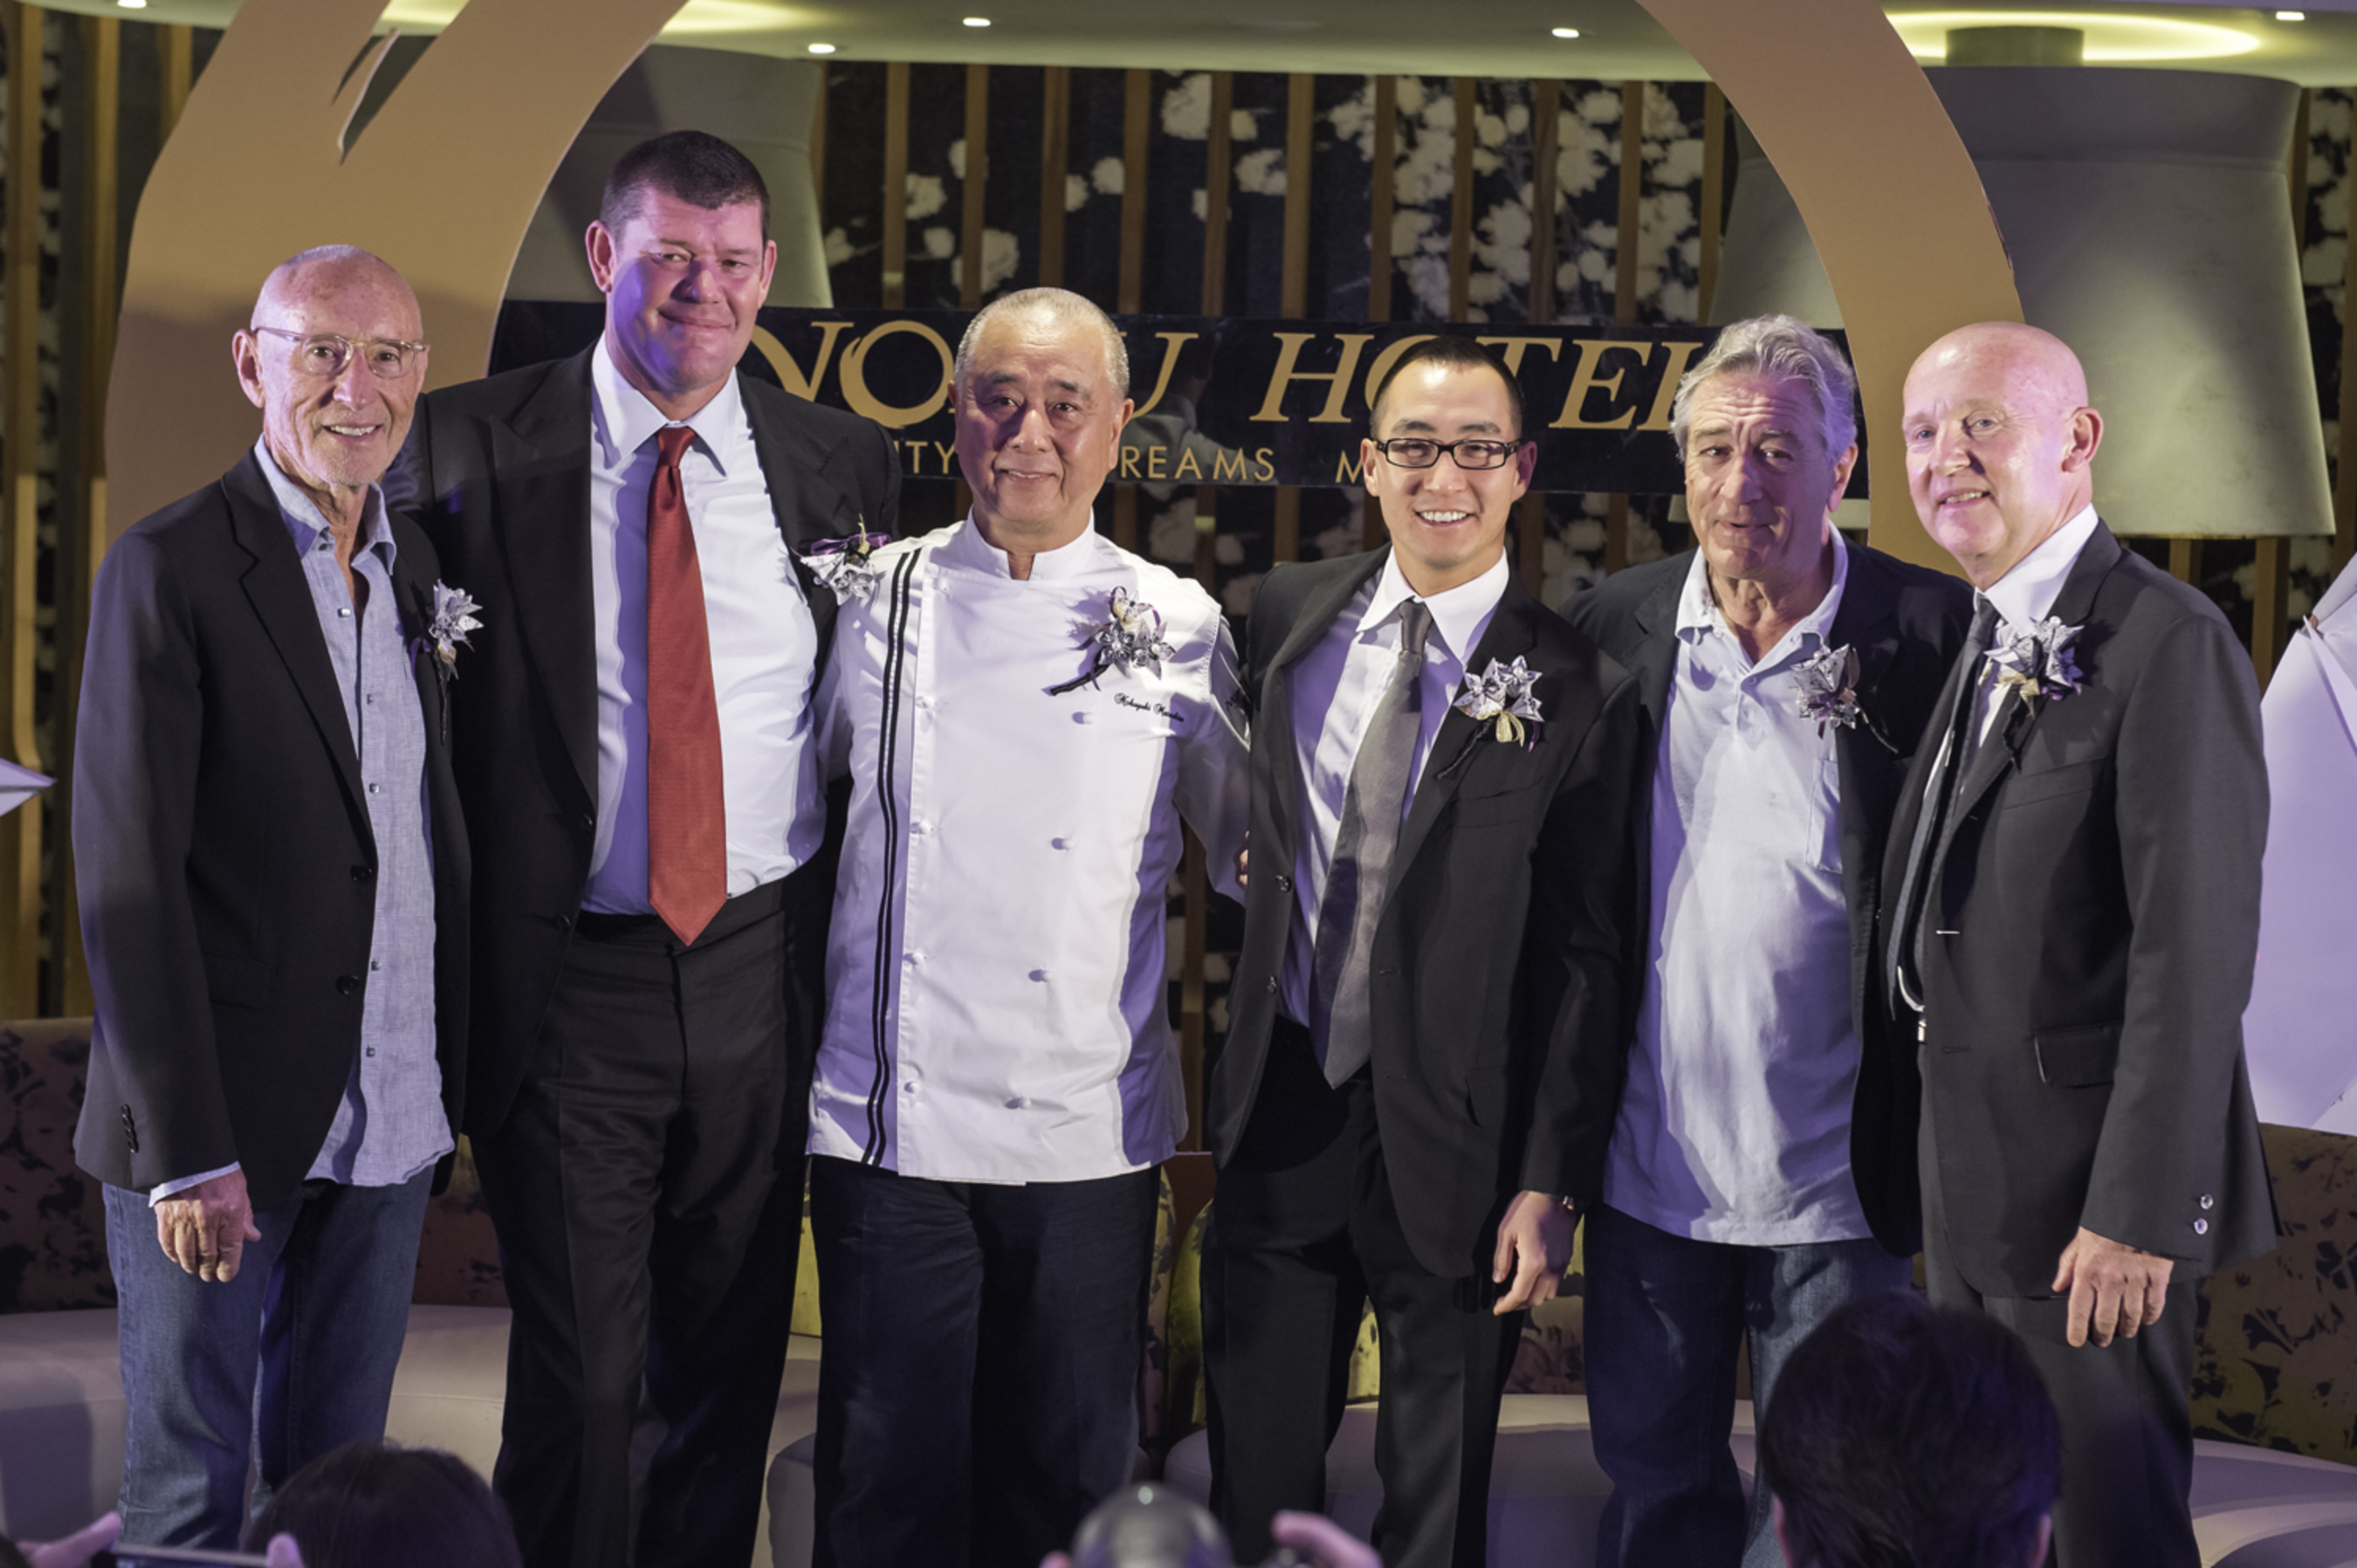 On stage at the Press Conference for the official Grand Opening of the Nobu Hotel at City of Dreams Manila, ...